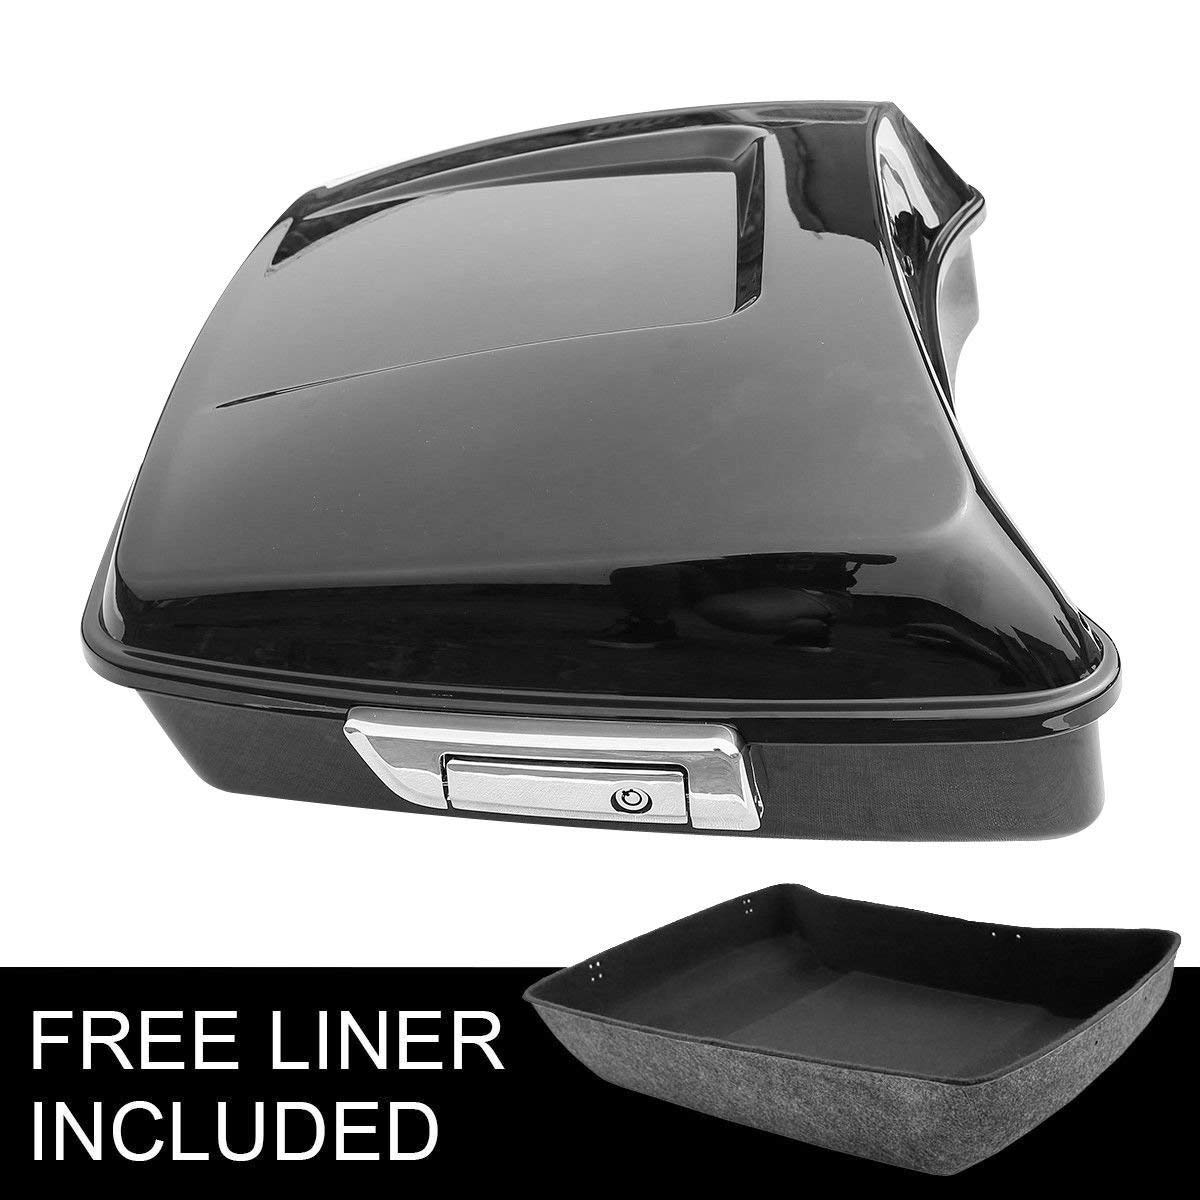 XFMT 10.7'' Chopped Tour Pak Pack Trunk W/Latch Compatible with Harley Street Road Glide 2014-19